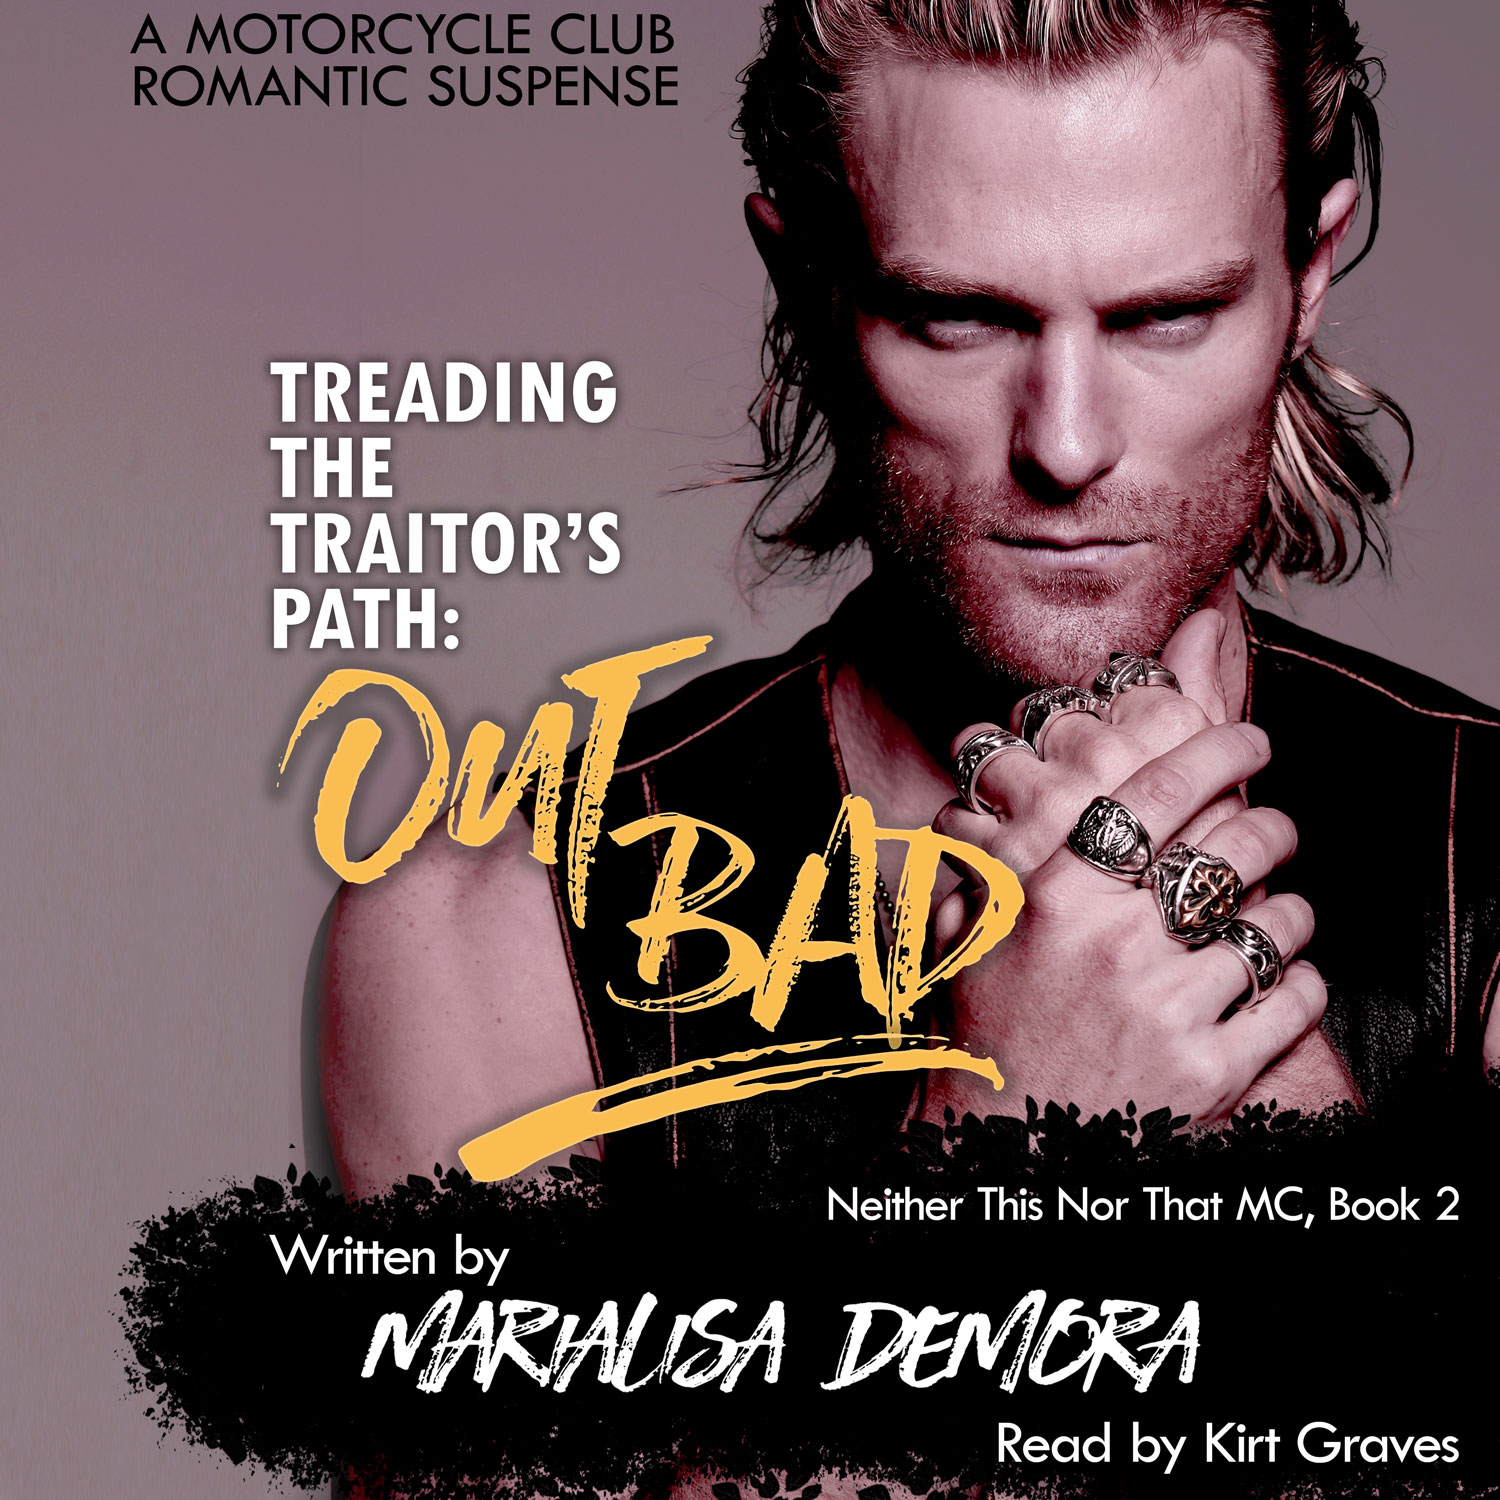 treading the traitor's path out bad cover